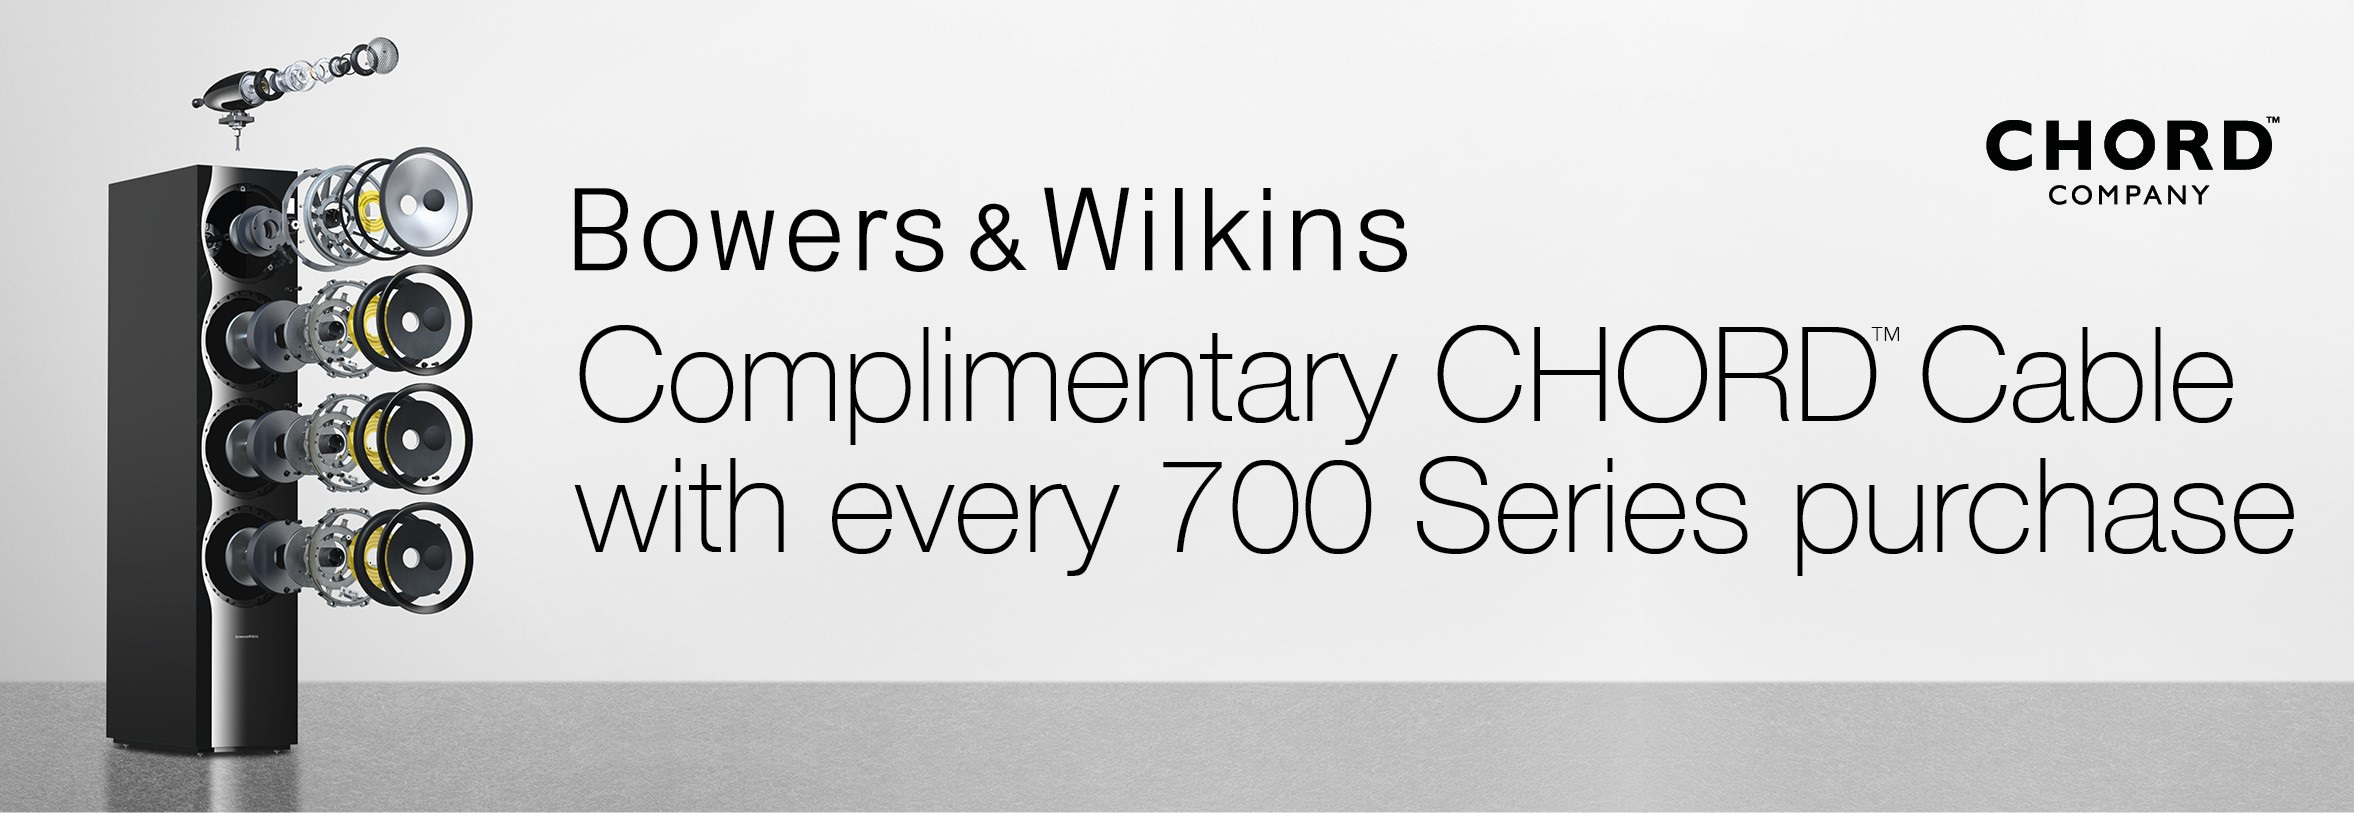 Bowers and wilkins Chord Company Promotion